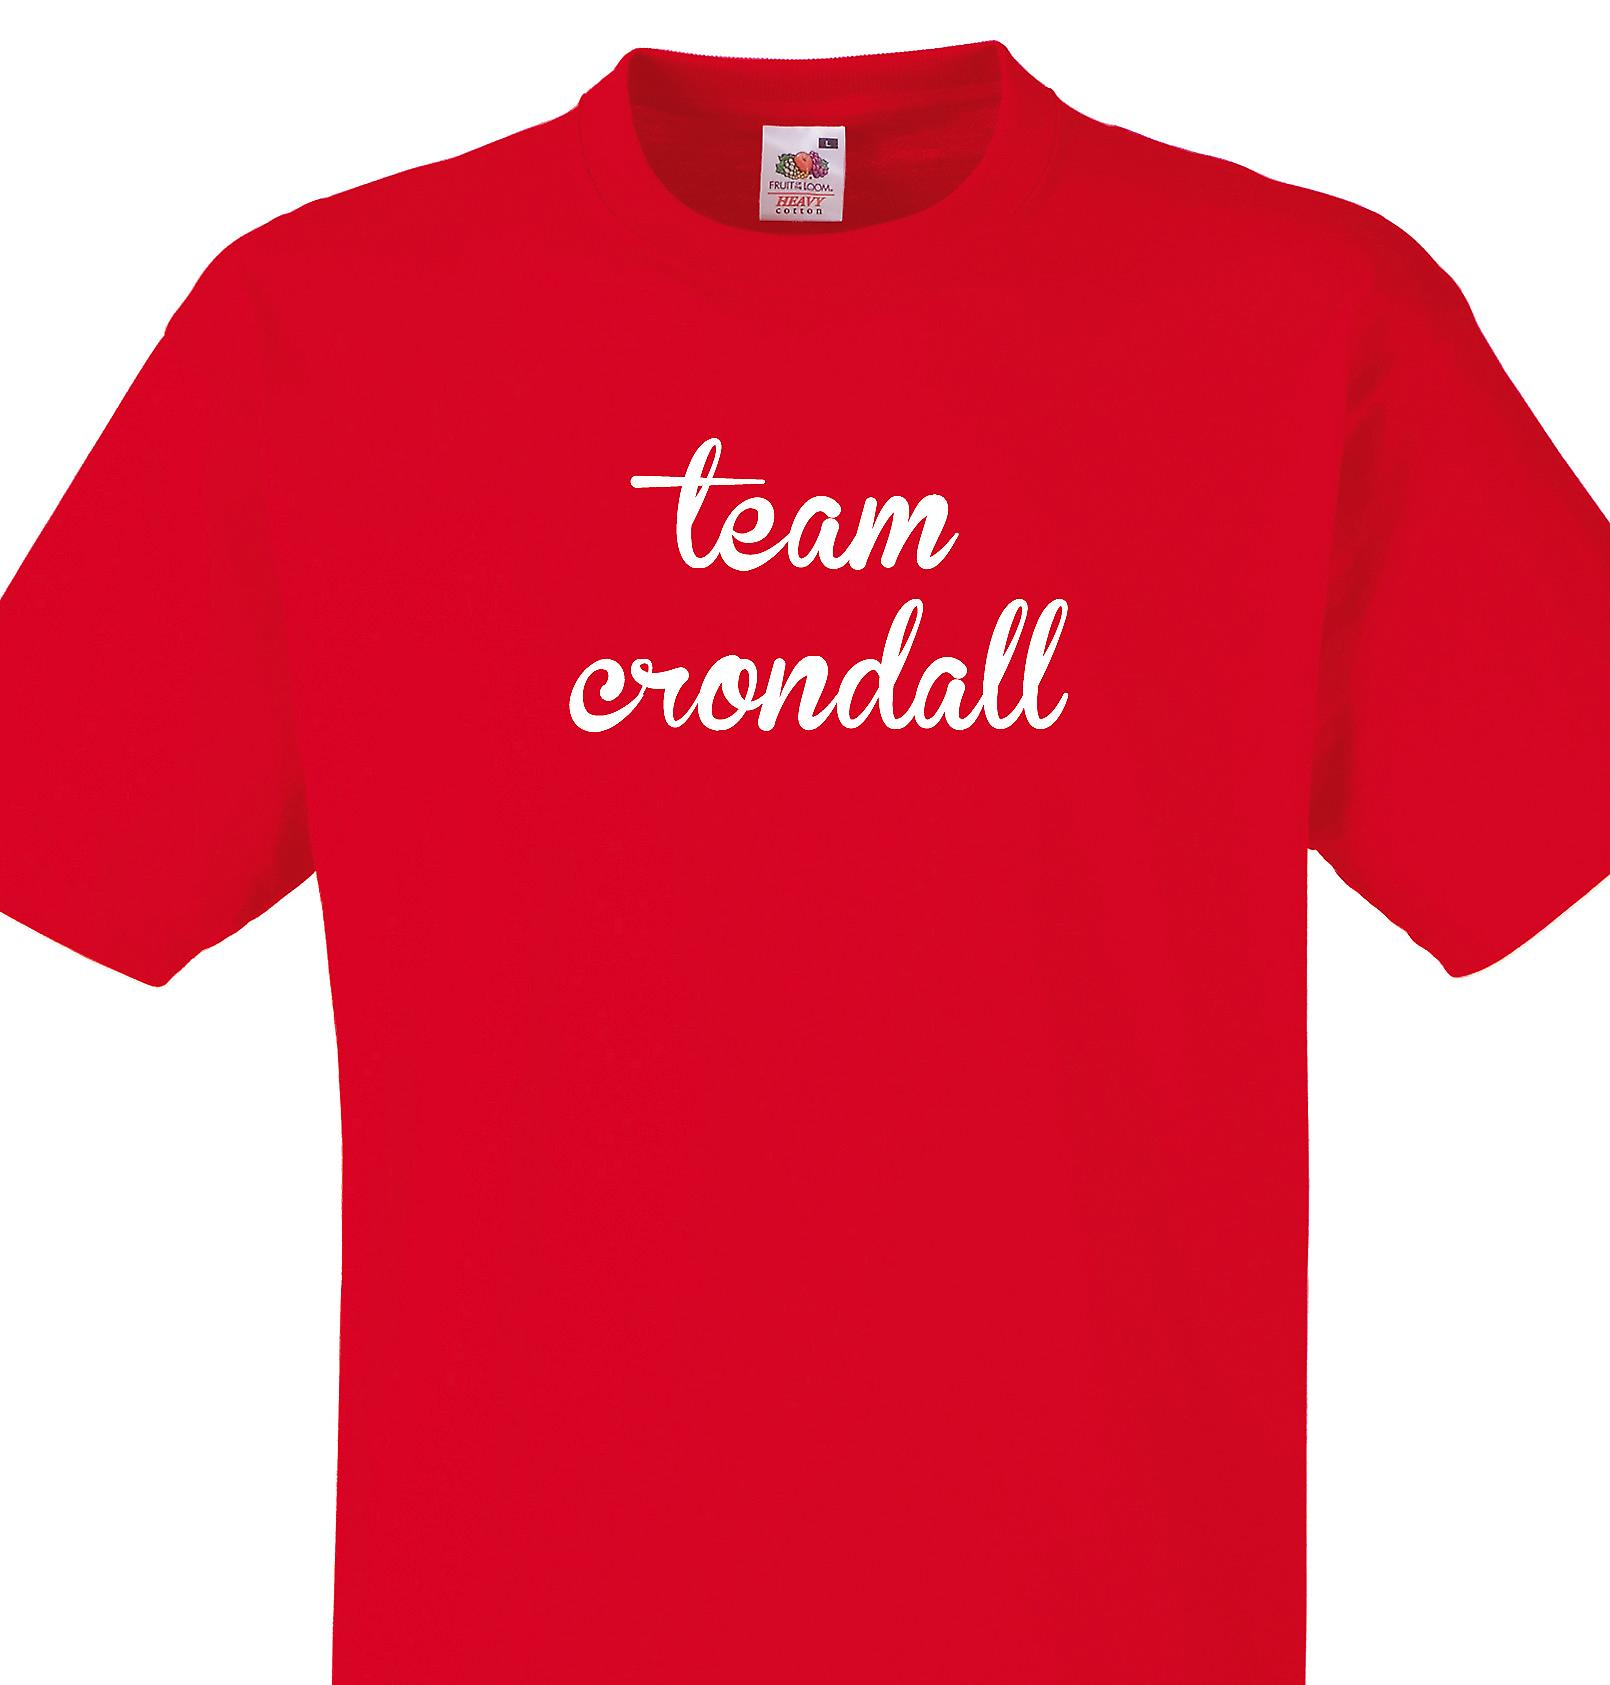 Team Crondall Red T shirt